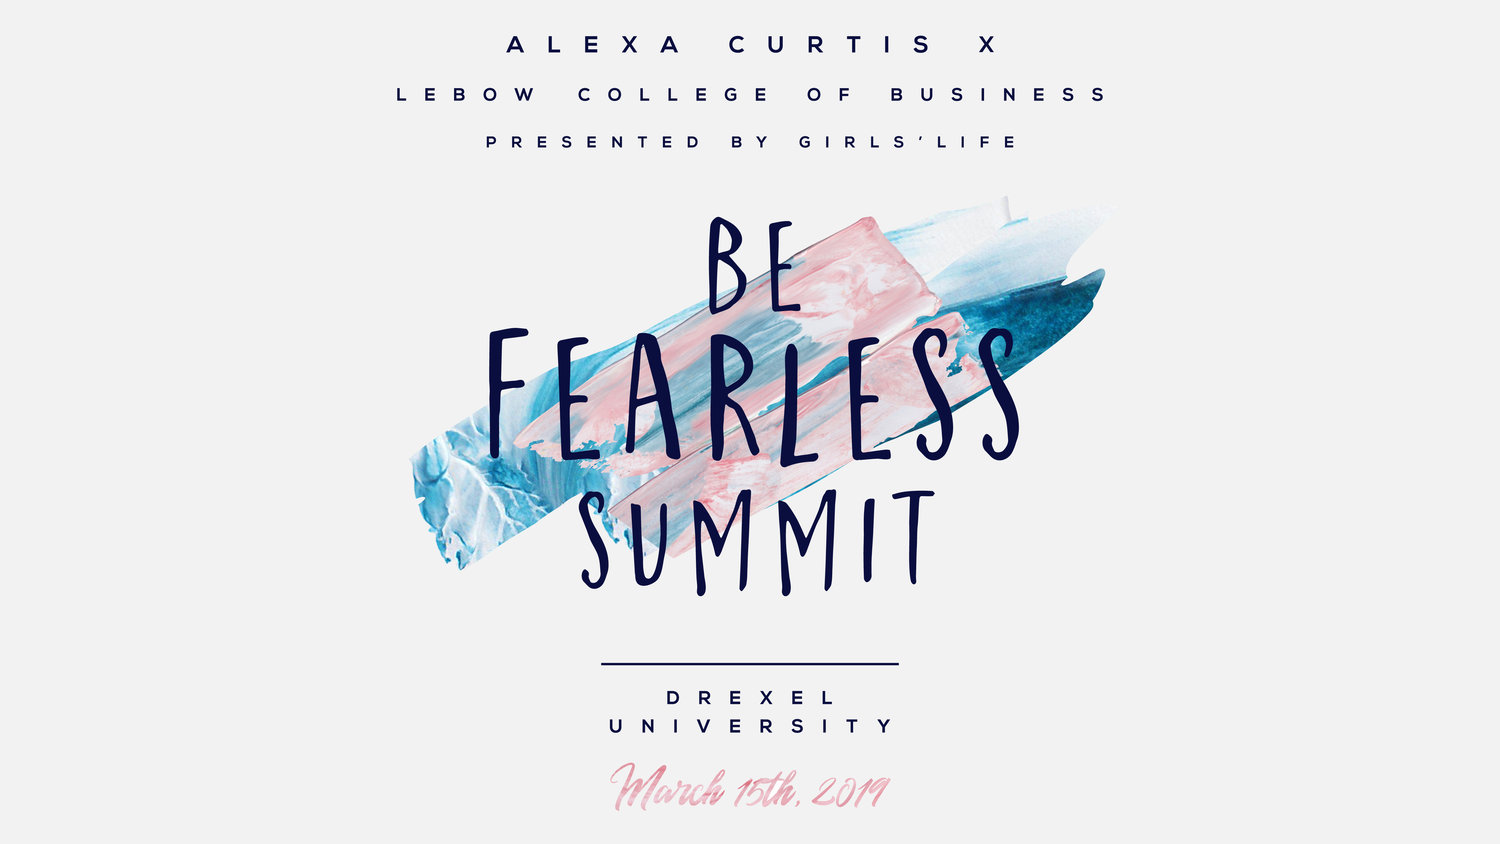 BE-FEARLESS-SUMMIT-WIDESCREEN-16X9-REVISED-01.jpg